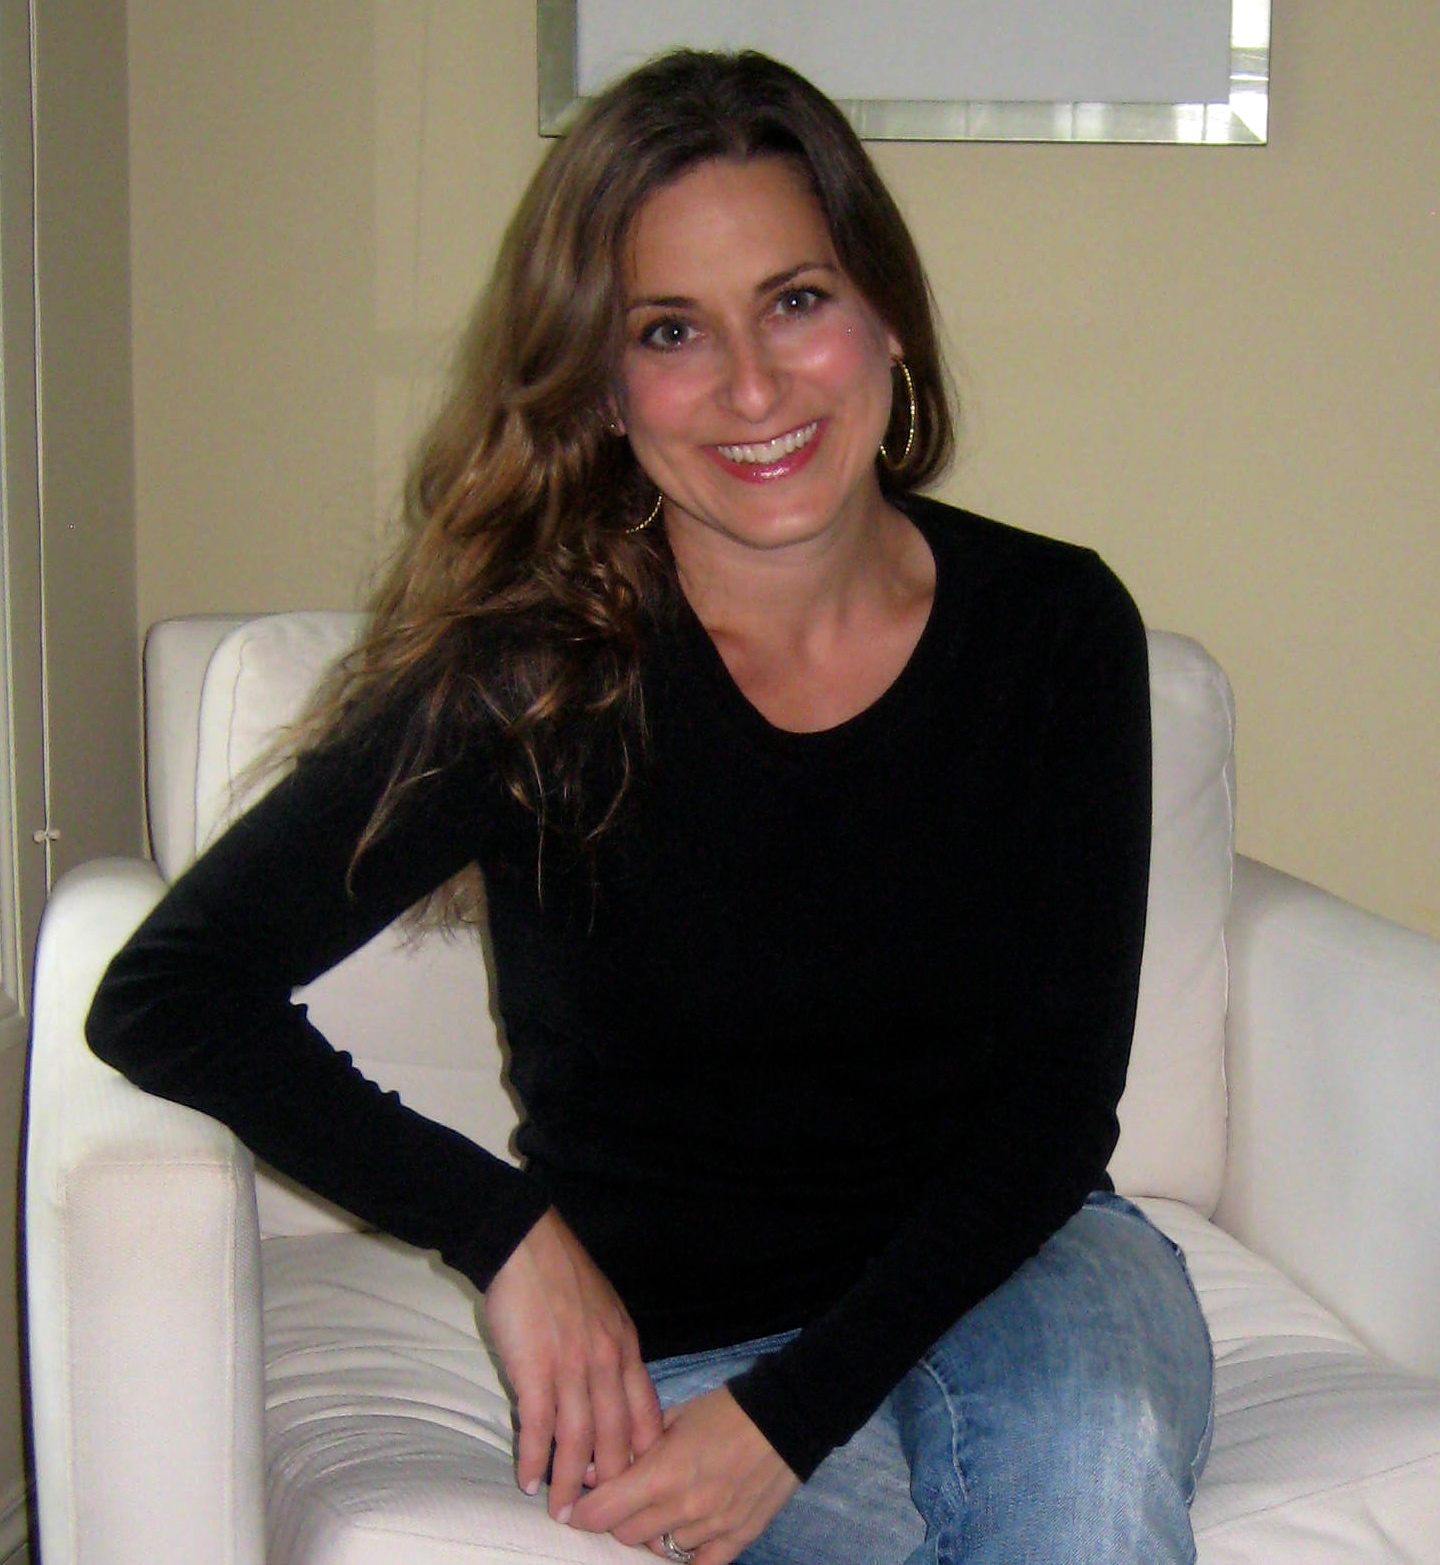 a review of the autobiography of dina saavedra Dr dina d strachan is a highly rated dermatologist in new york, ny with over 11 areas of expertise, including actinic keratosis, acne (acne vulgaris), mole see dr.